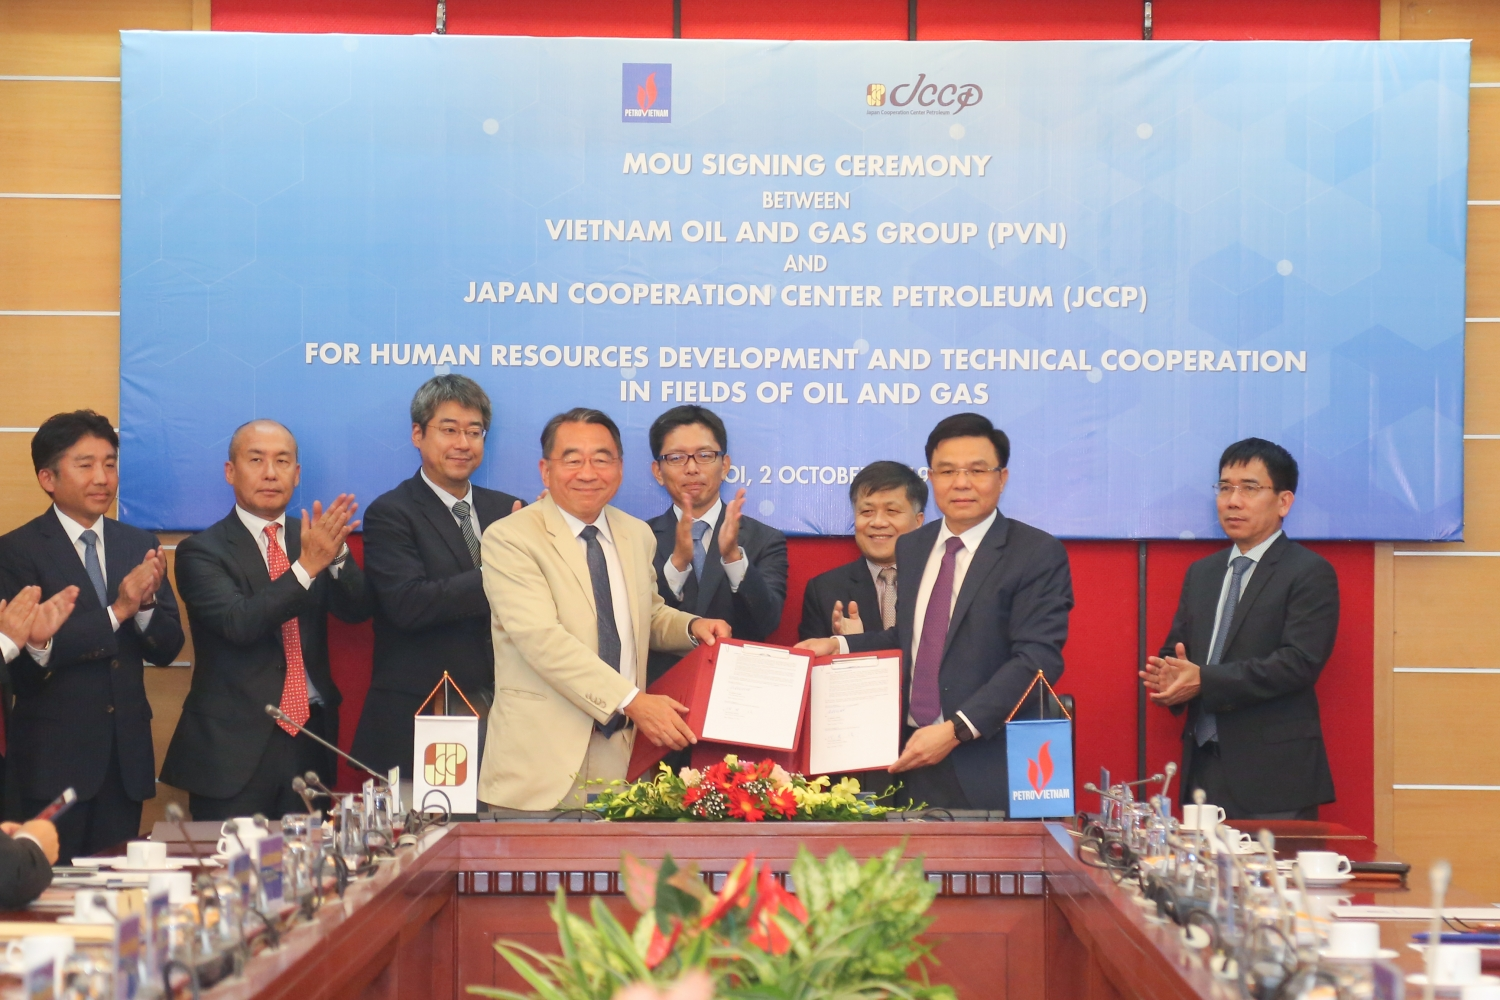 PVN and JCCP strengthen cooperation in oil and gas processing and new energy development